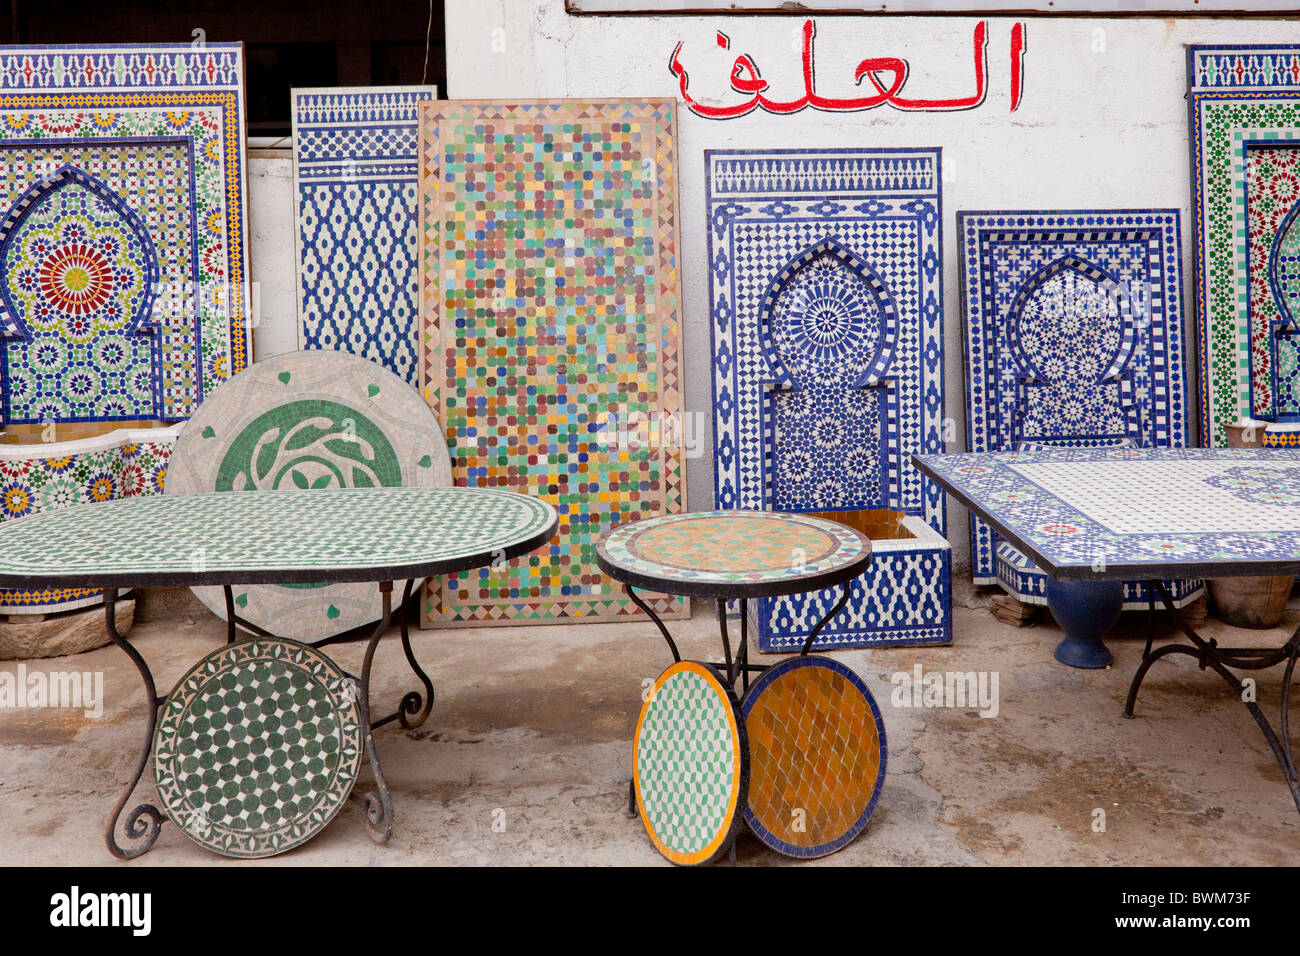 Incroyable A Ceramic Factory Manufacturing Mosaic Tile Fountains And Furniture In Fes,  Morocco.